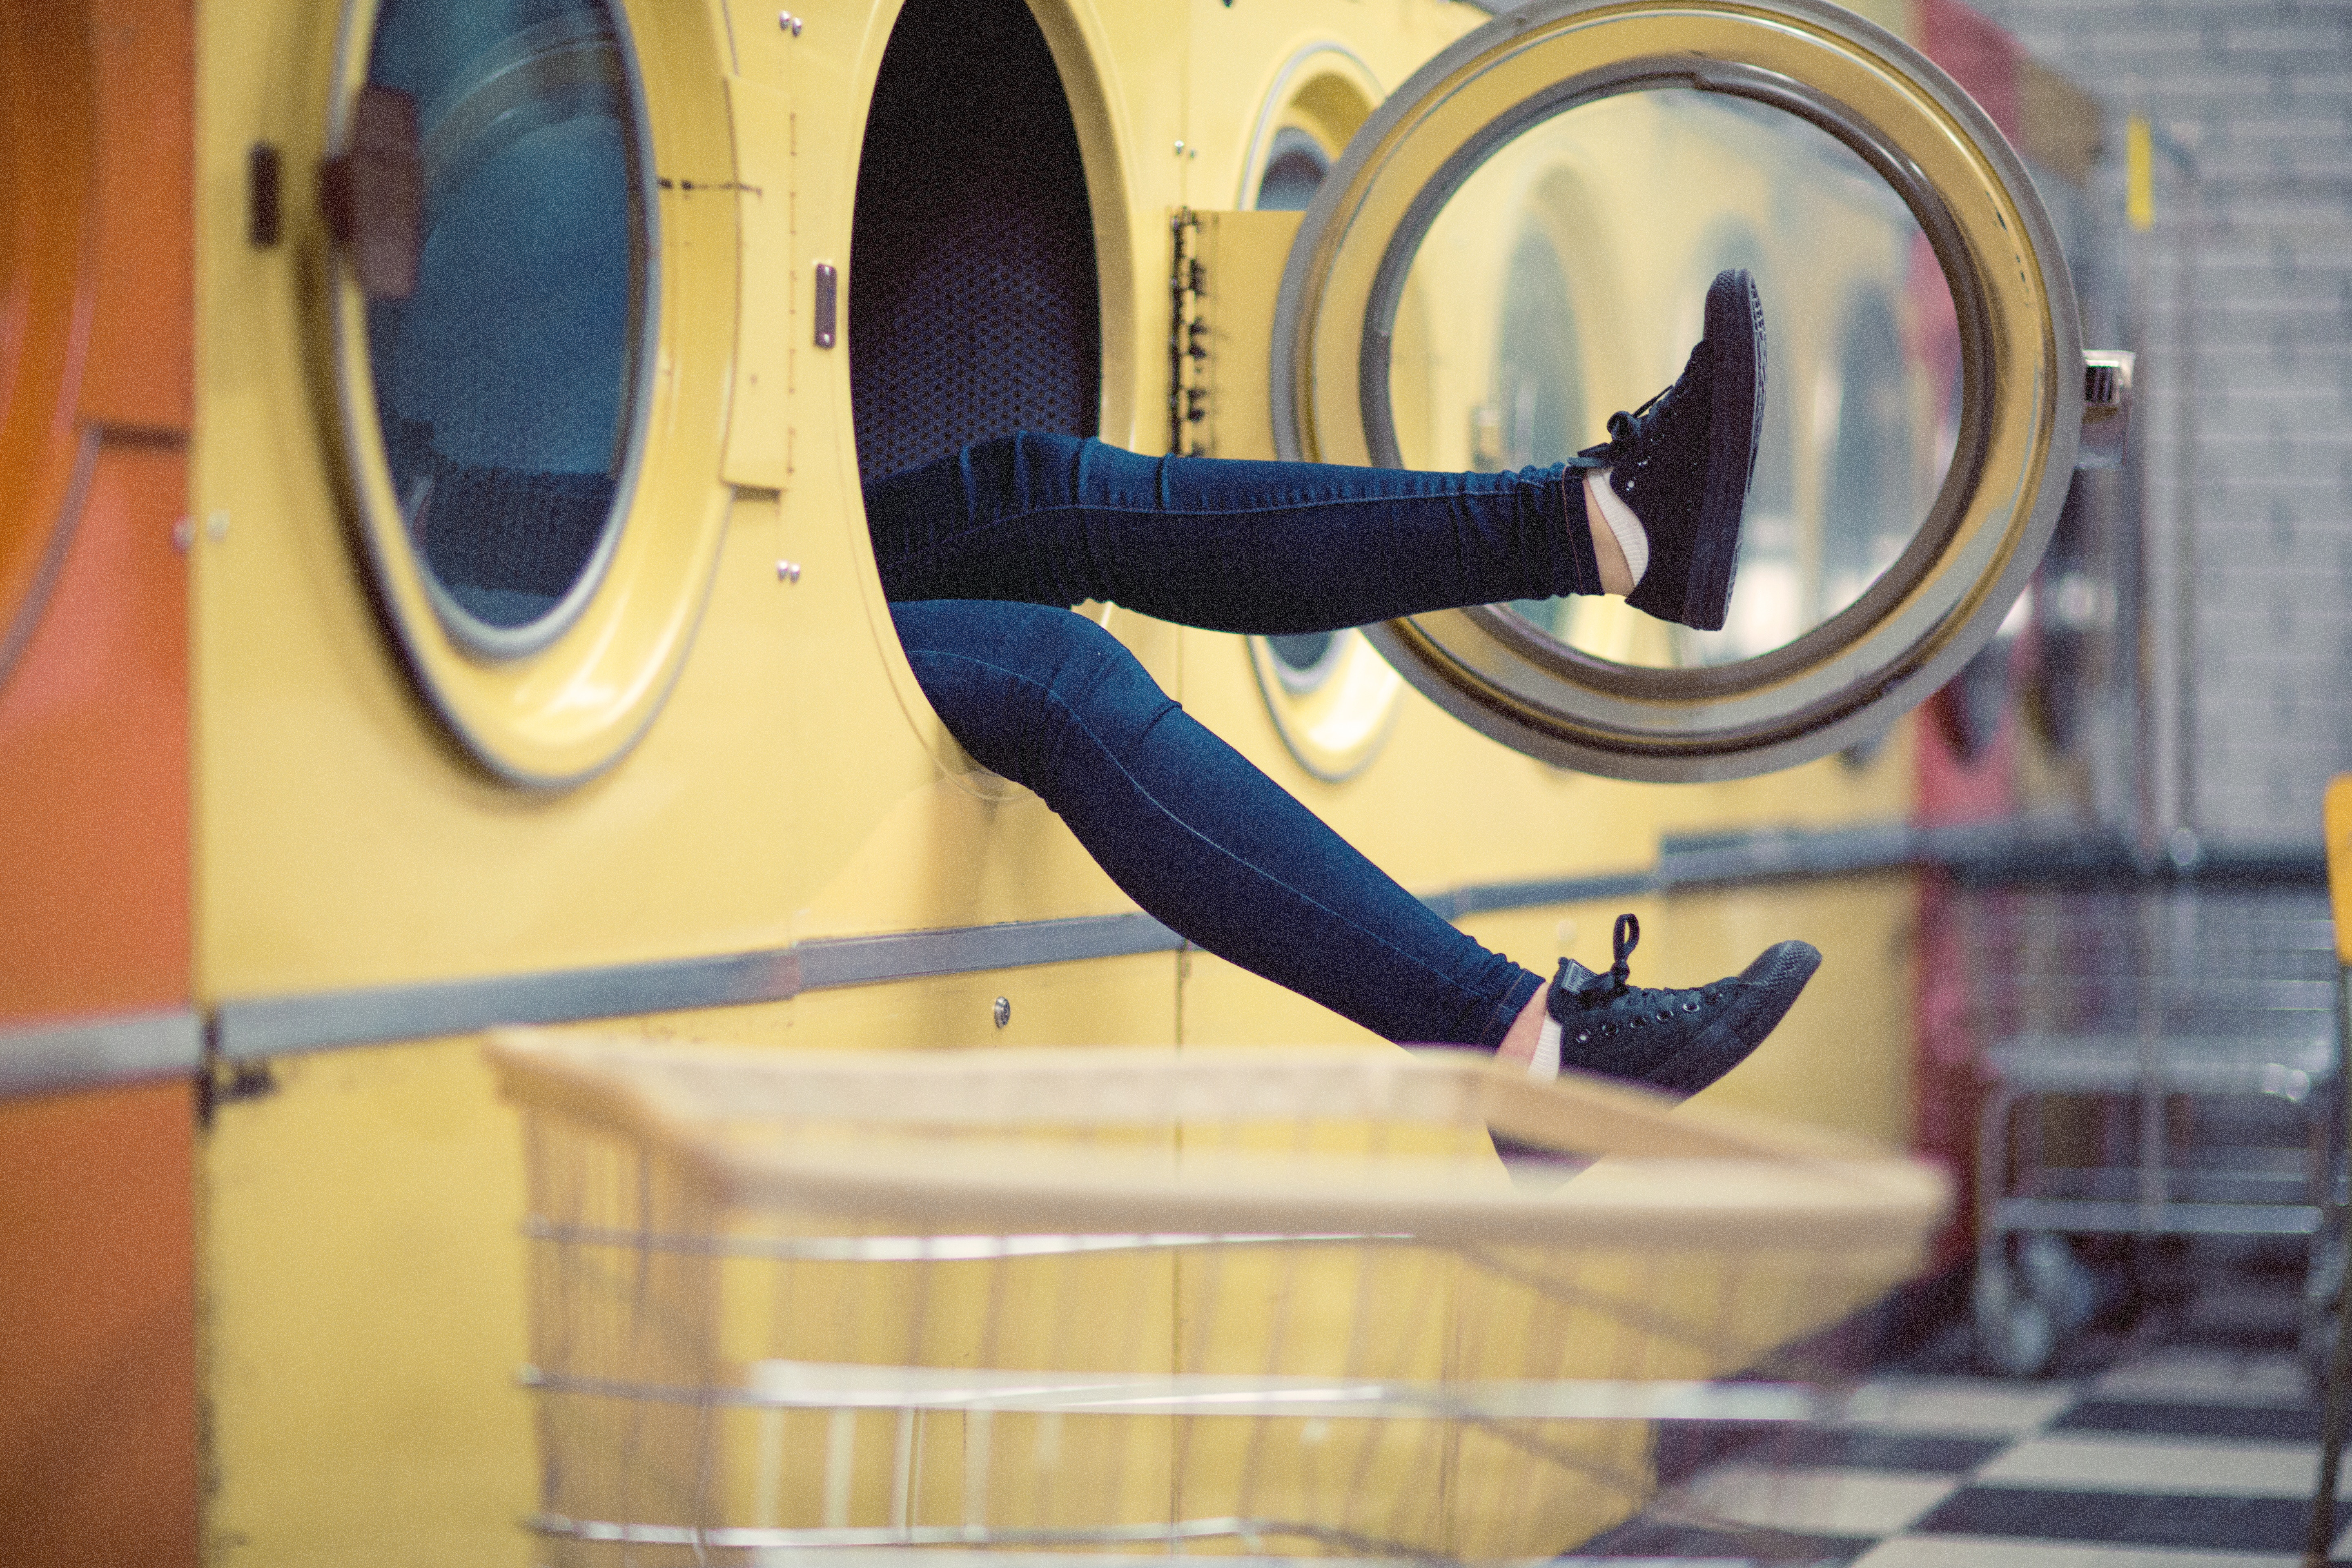 woman in machine at laundromat